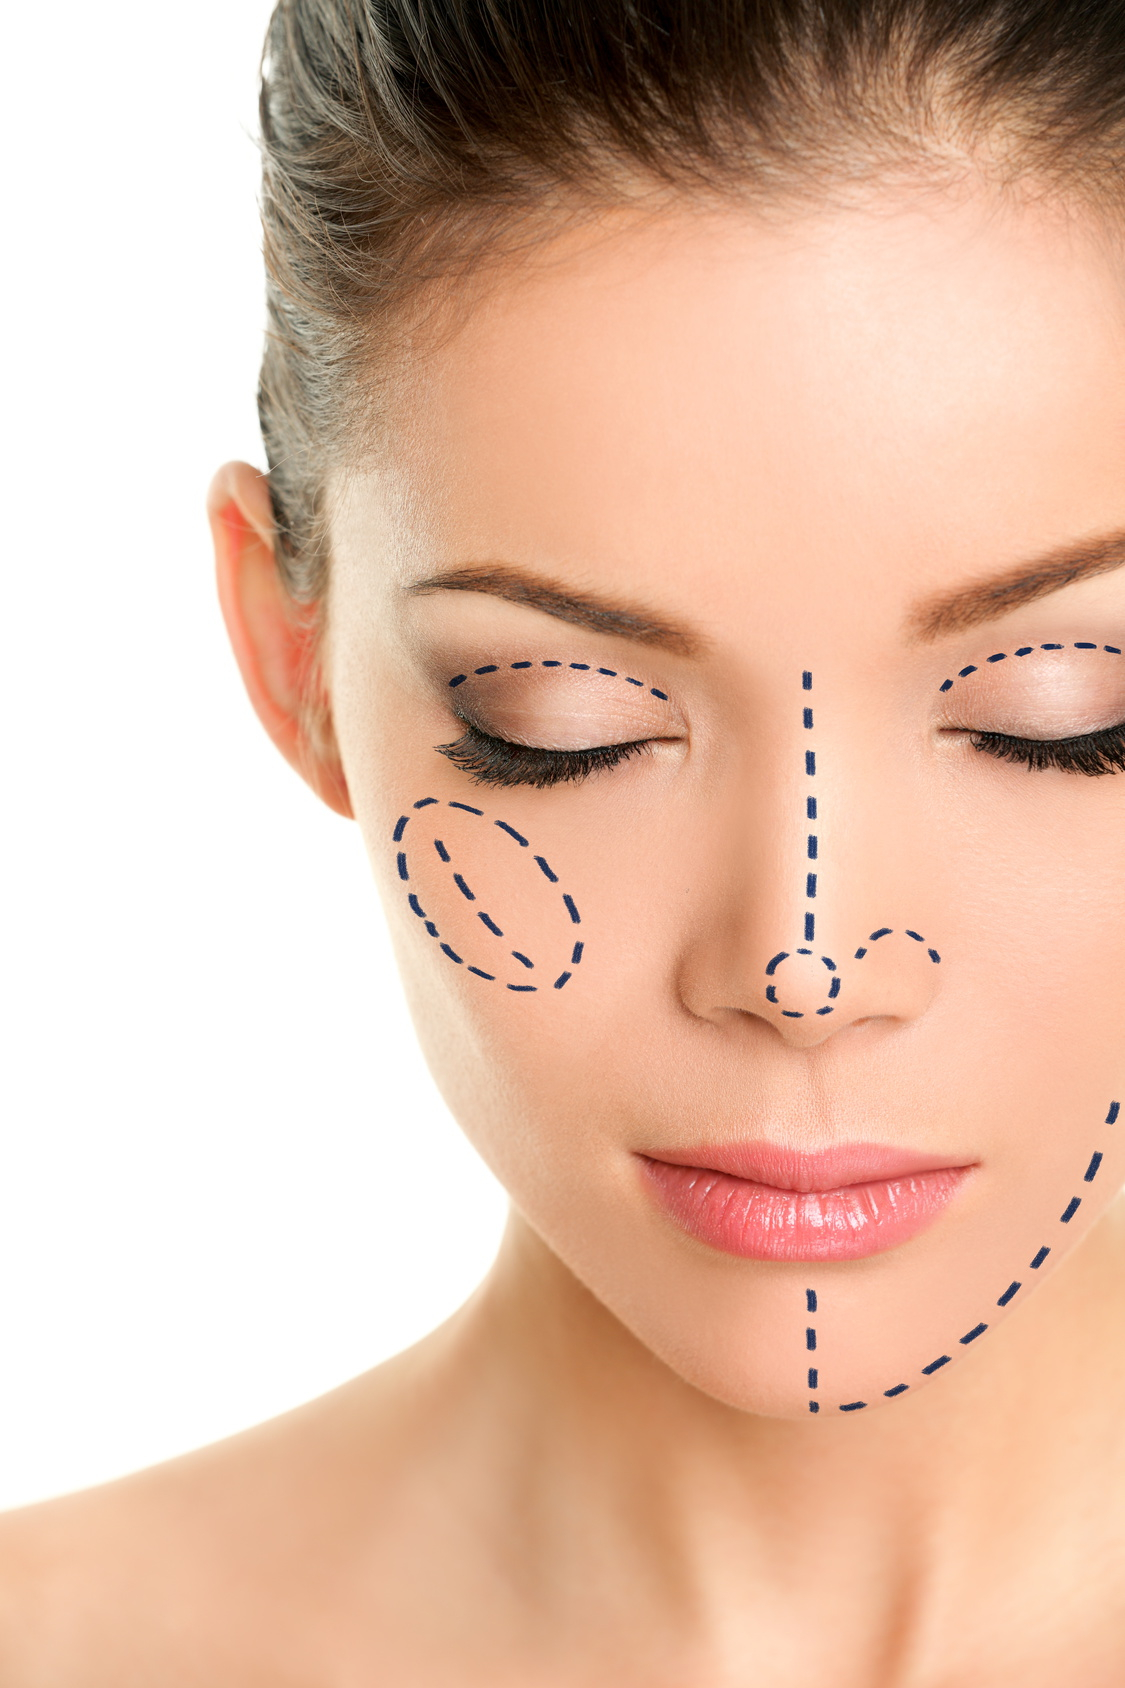 rhinoplasty glasgow